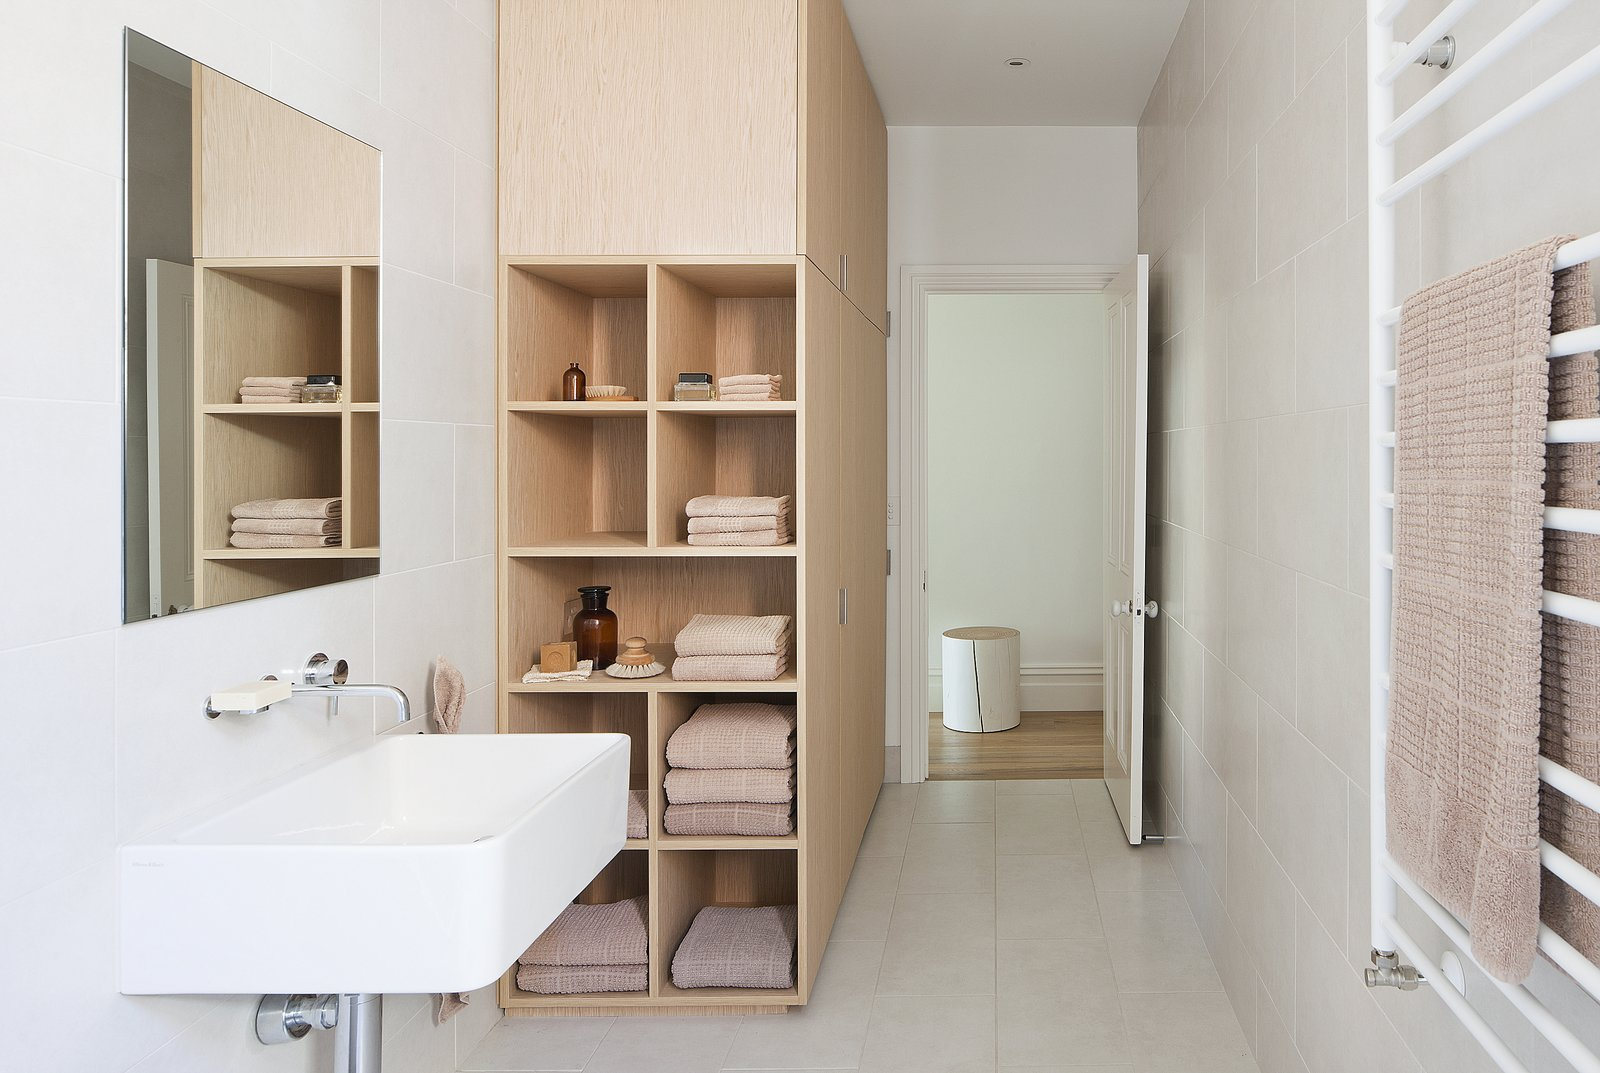 Storage Room, Wall Mount Sink, Ceramic Tile Wall, Ceramic Tile Floor, and Shelves Storage Type To stay within the budget, the designers decided to forgo natural stone in the bathrooms in lieu of simple vitrified tile. The bathroom isn't without its luxuries, however, as evidenced by the heated towel rail from Hydrotherm.  Best Photos from Seclusion